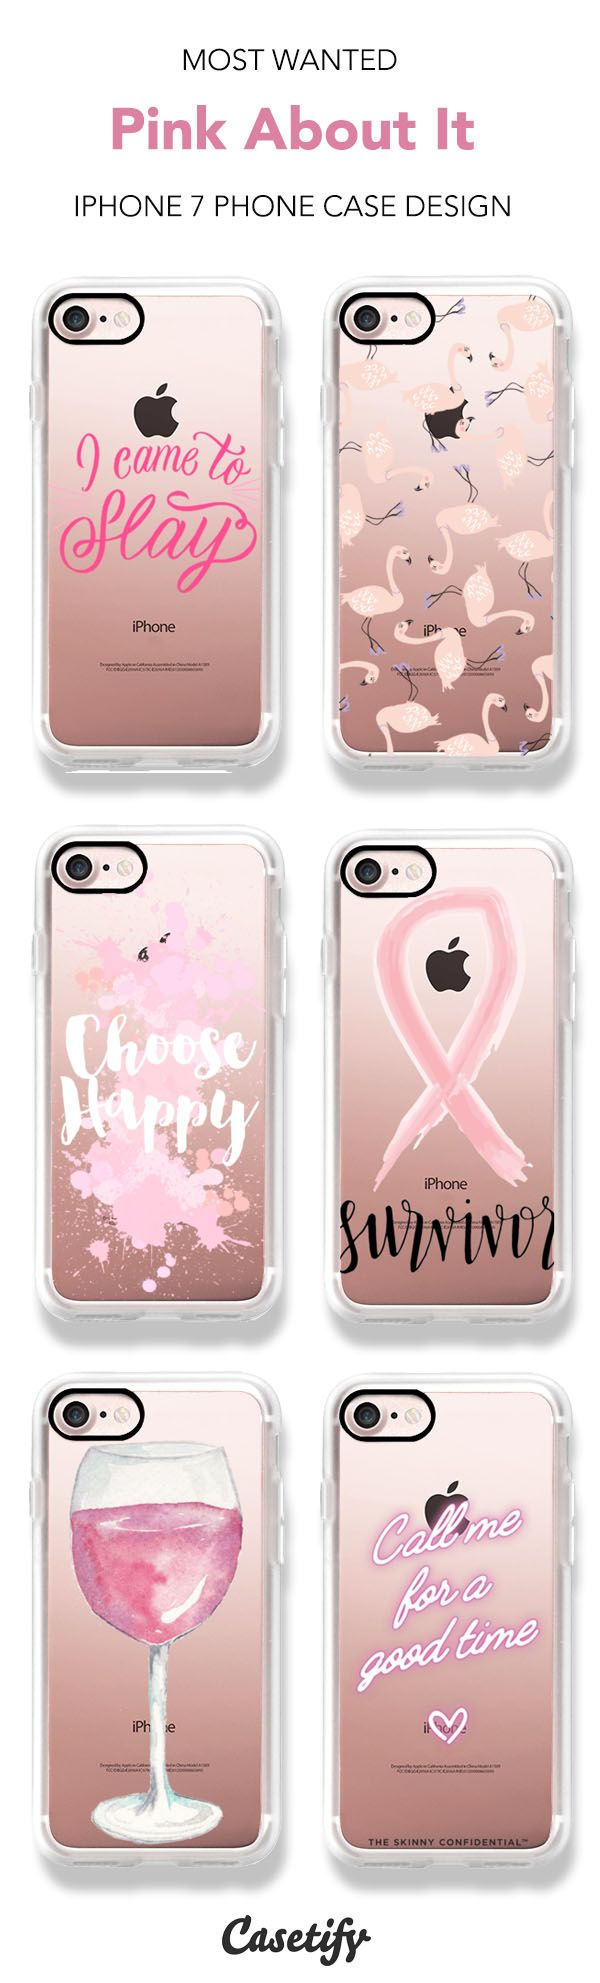 Show your support for Breast Cancer Awareness in October! Casetify will donate 30% of its proceeds to Susan G Koman. Most Wanted Pink About It iPhone 7 and iPhone 7 Plus case. Shop them all here > https://www.casetify.com/artworks/sZMLUJouHb